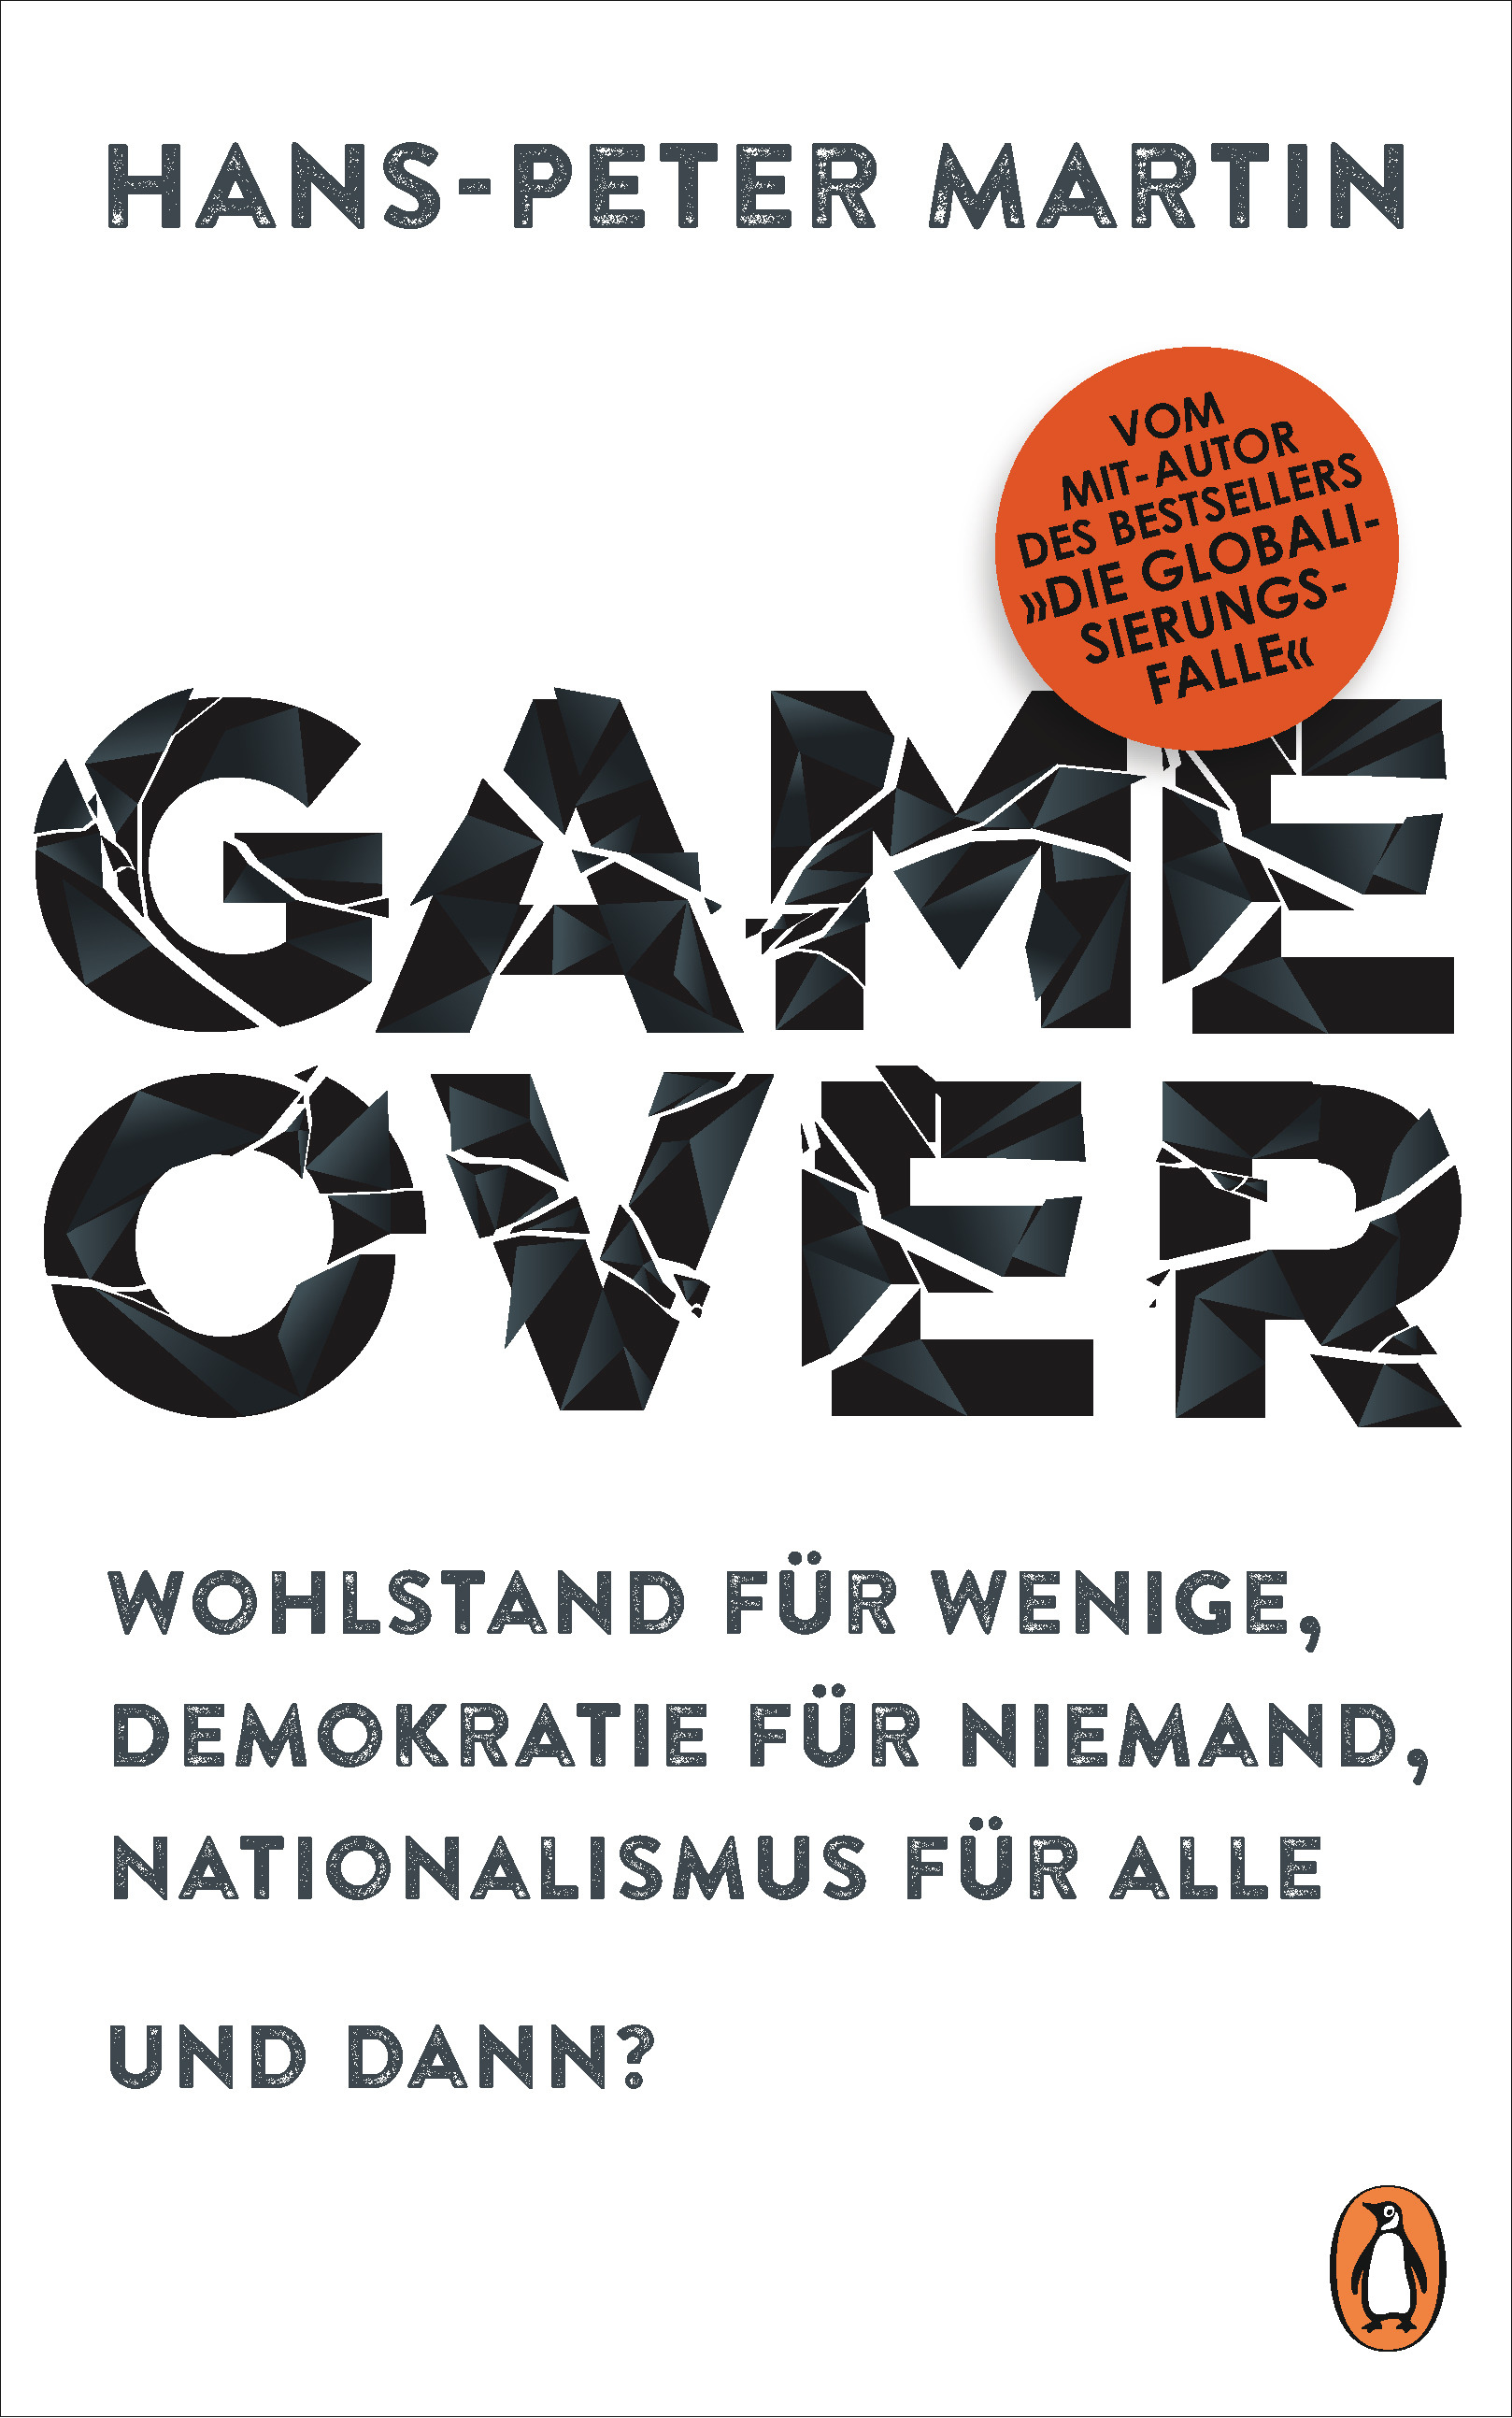 bd1c0be30f7b81 Hans-Peter Martin  Game Over. penguin (Hardcover)